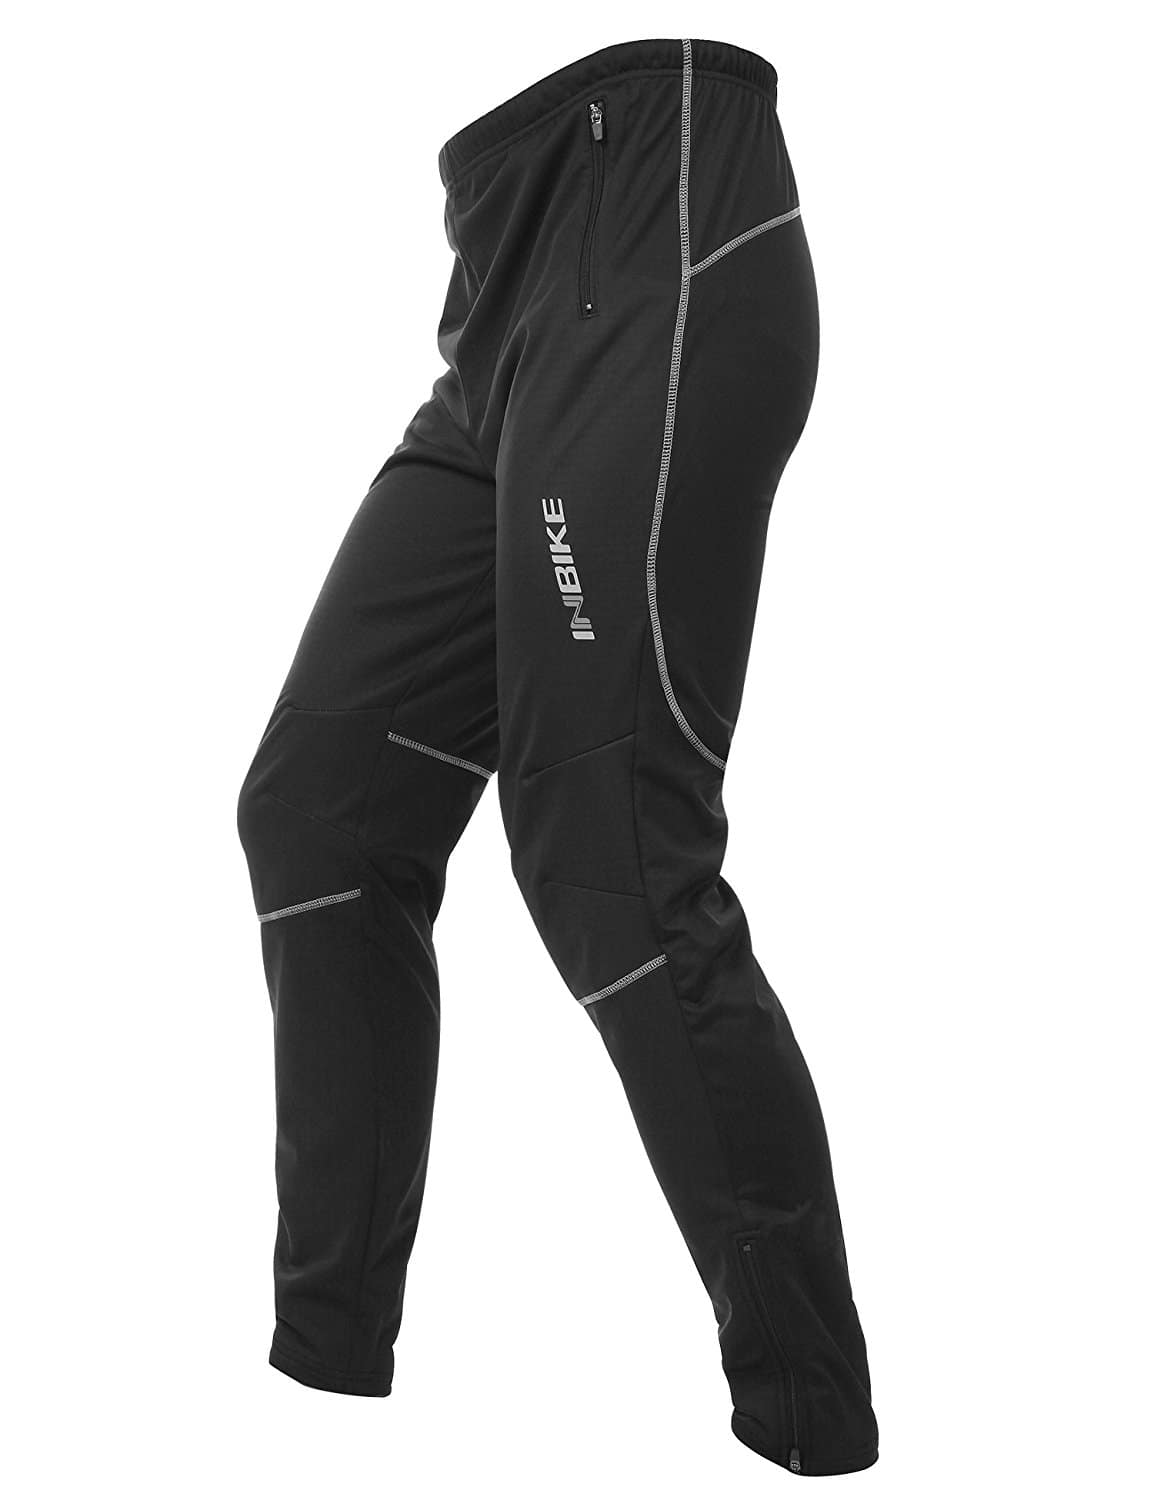 INBIKE Men's Winter Fleece Thermal Pants for Outdoor Multi Sports from $25.59 to $26.39